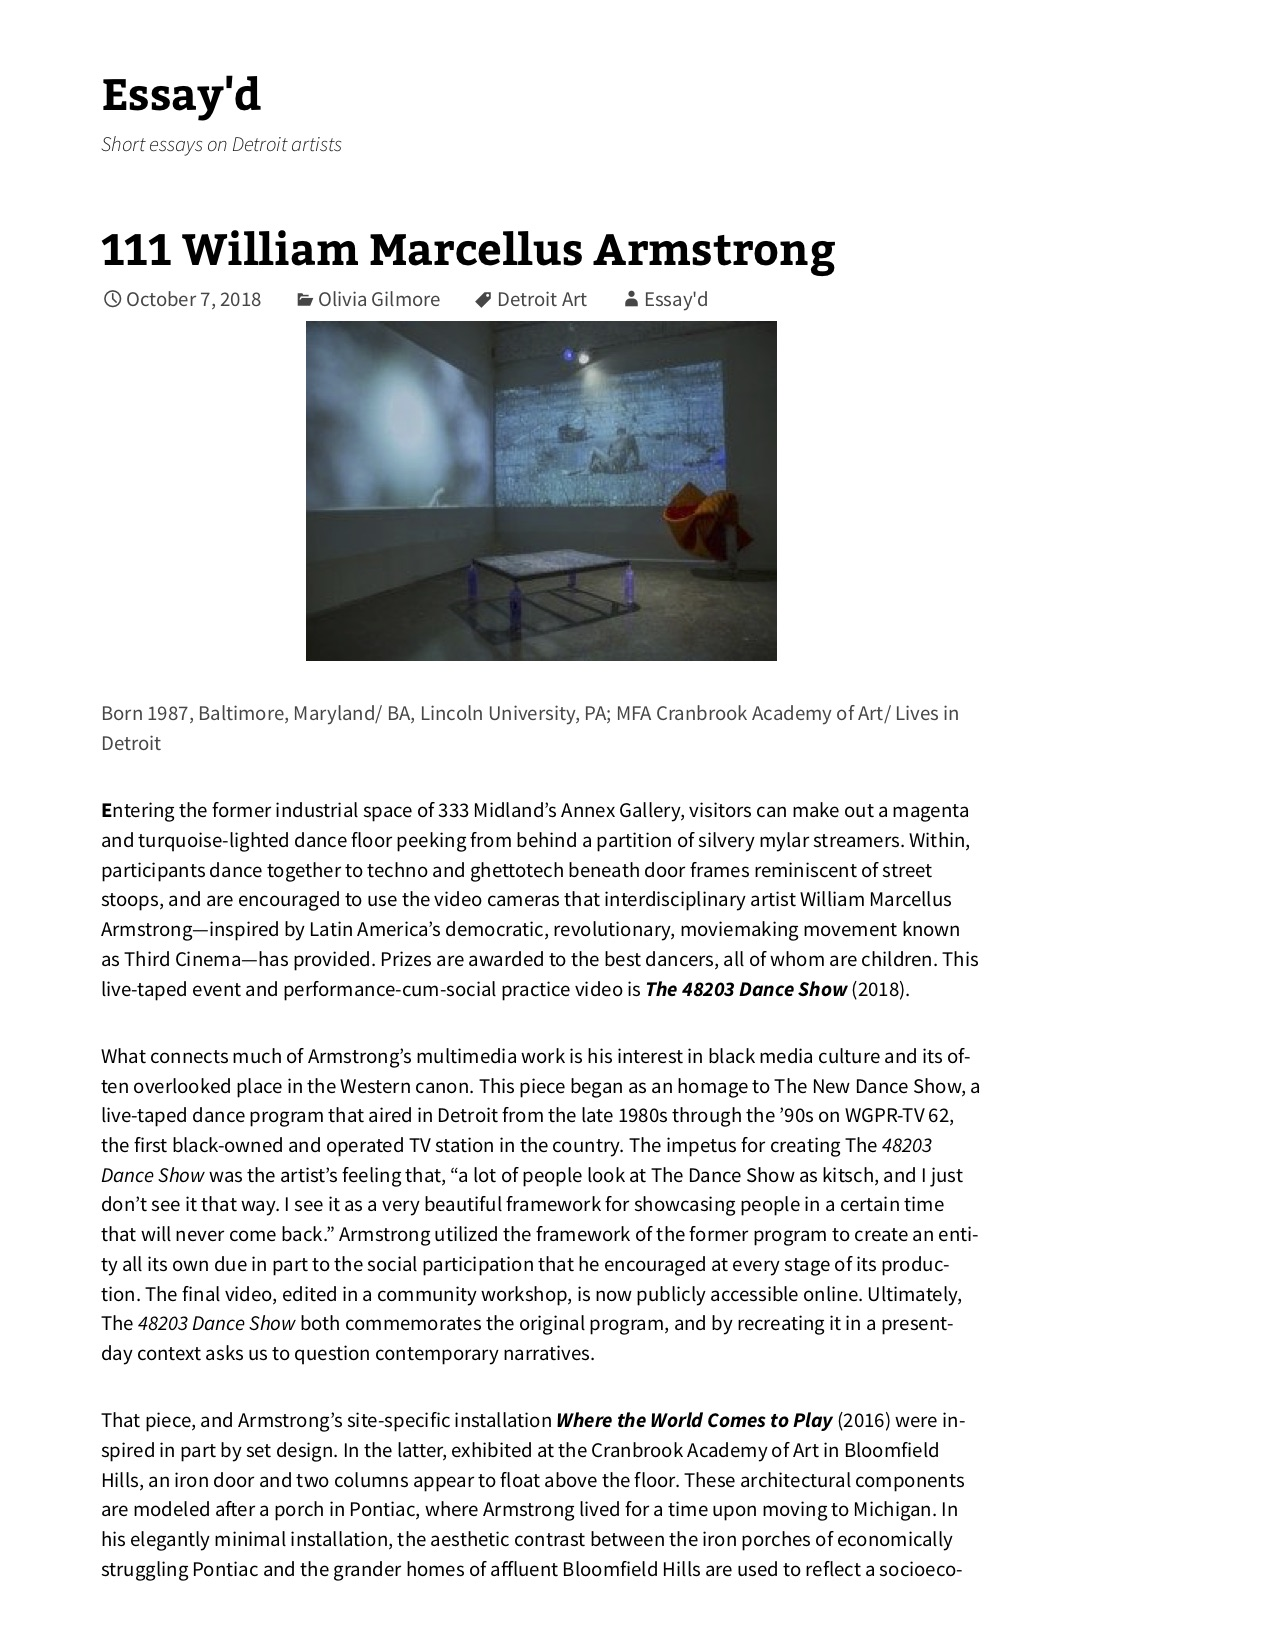 111 William Marcellus Armstrong | Essay'd.jpg